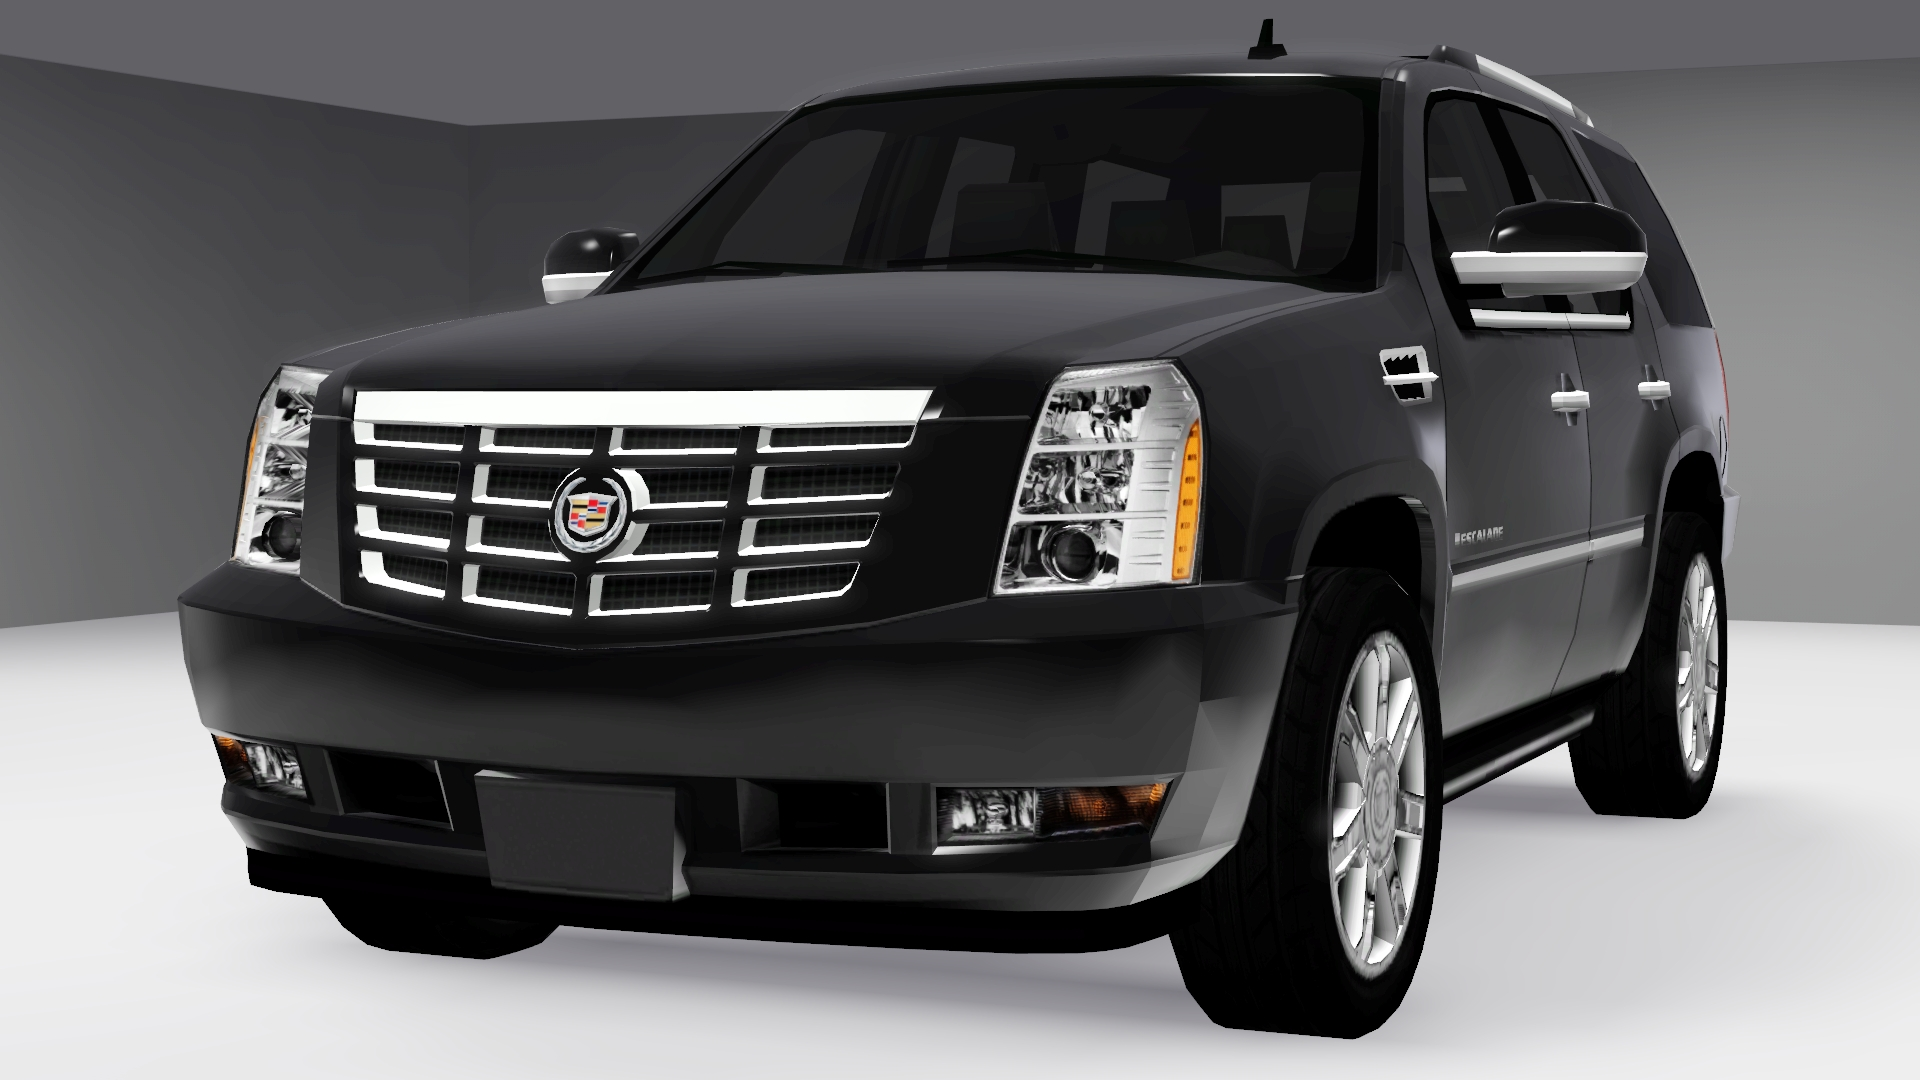 2011 Cadillac Escalade by Fresh-Prince